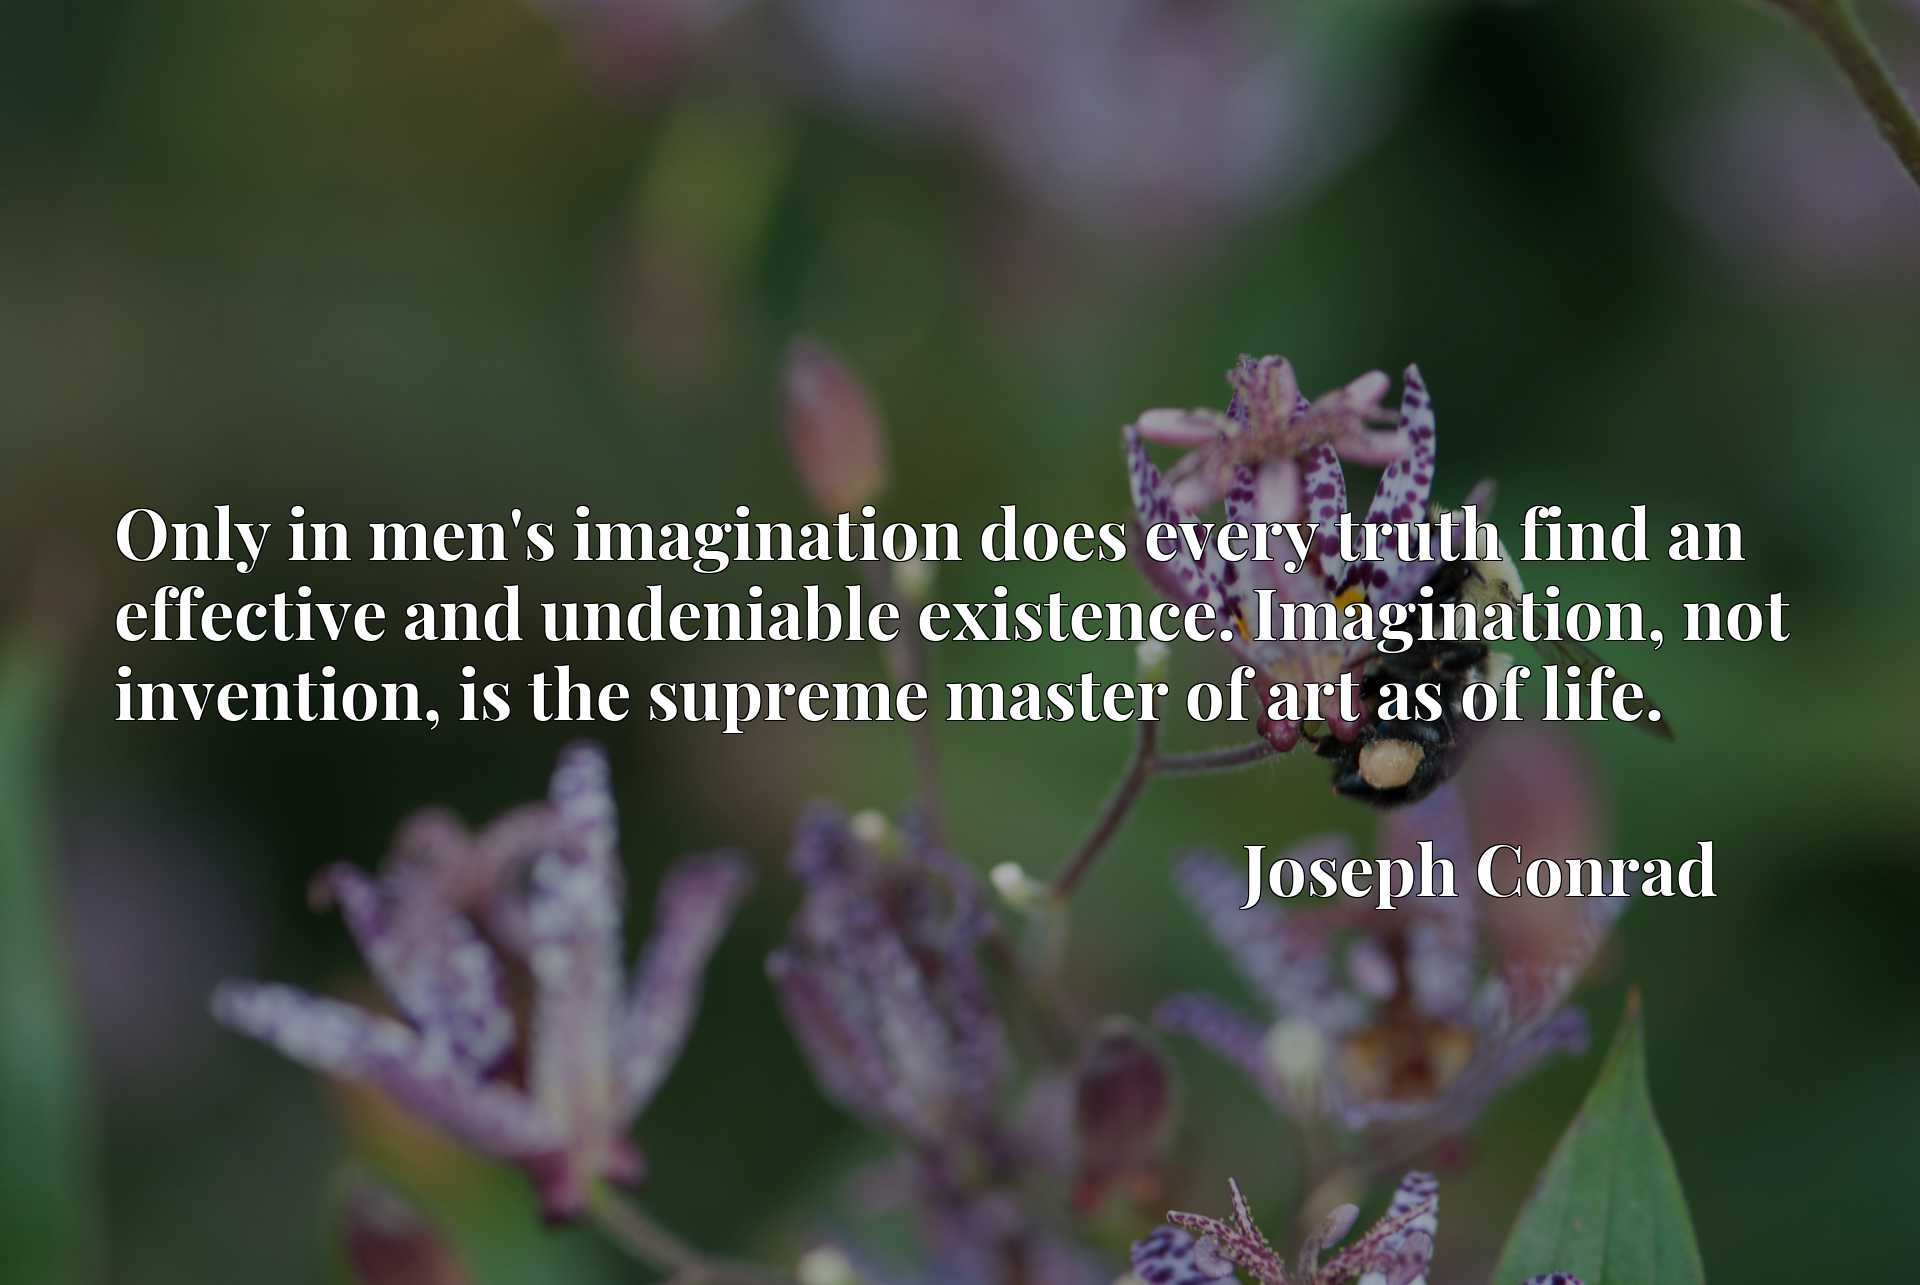 Only in men's imagination does every truth find an effective and undeniable existence. Imagination, not invention, is the supreme master of art as of life.